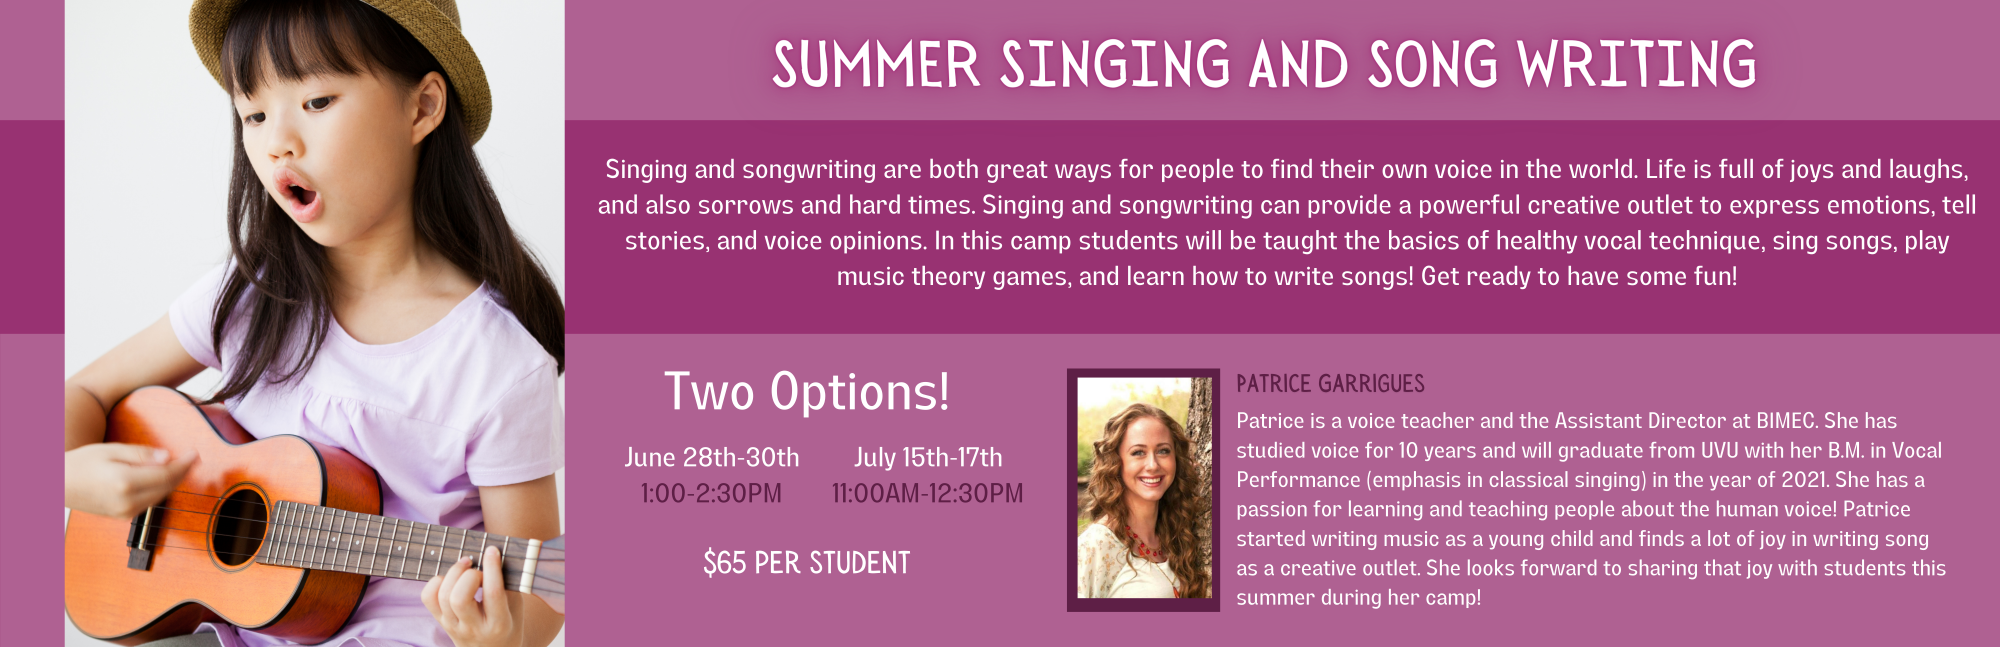 Summer Singing and Songwriting